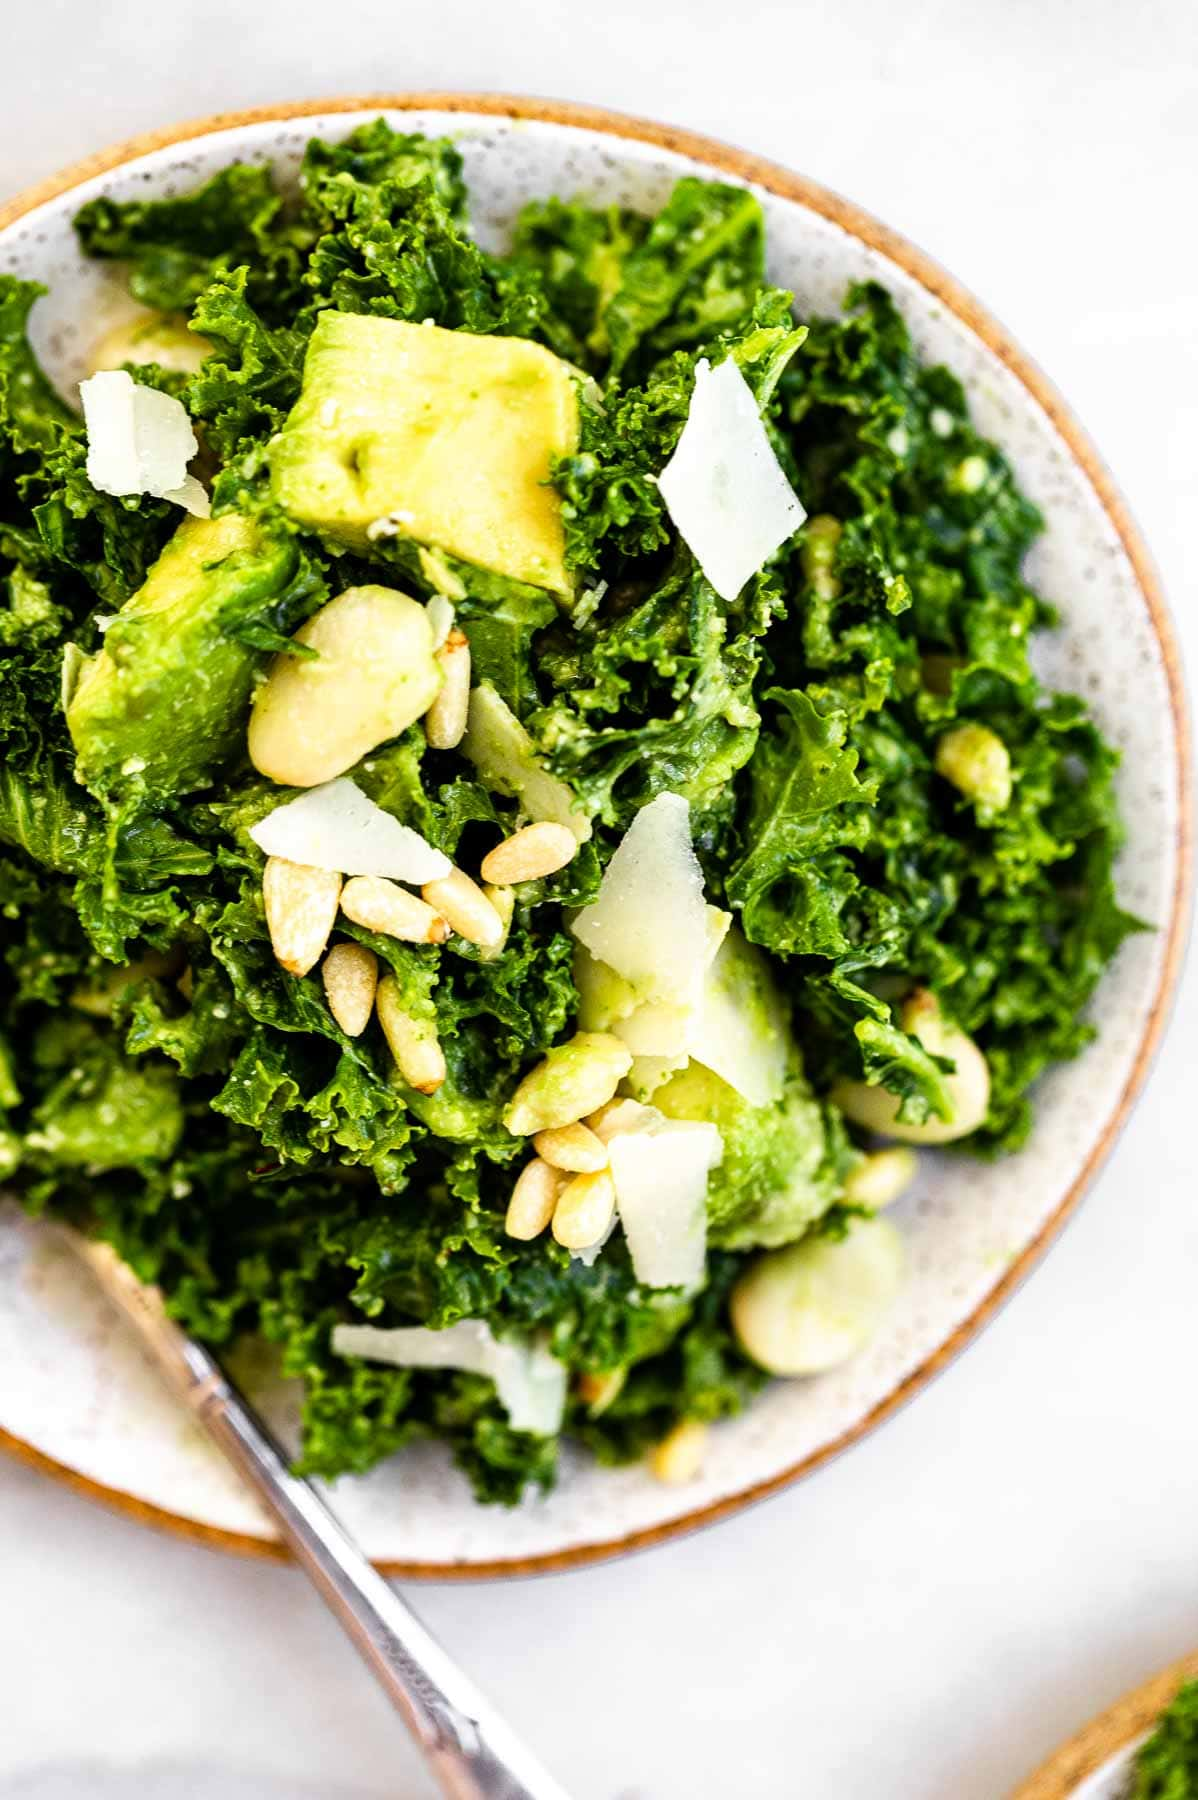 Massage kale avocado salad with pine nuts and parmesan.